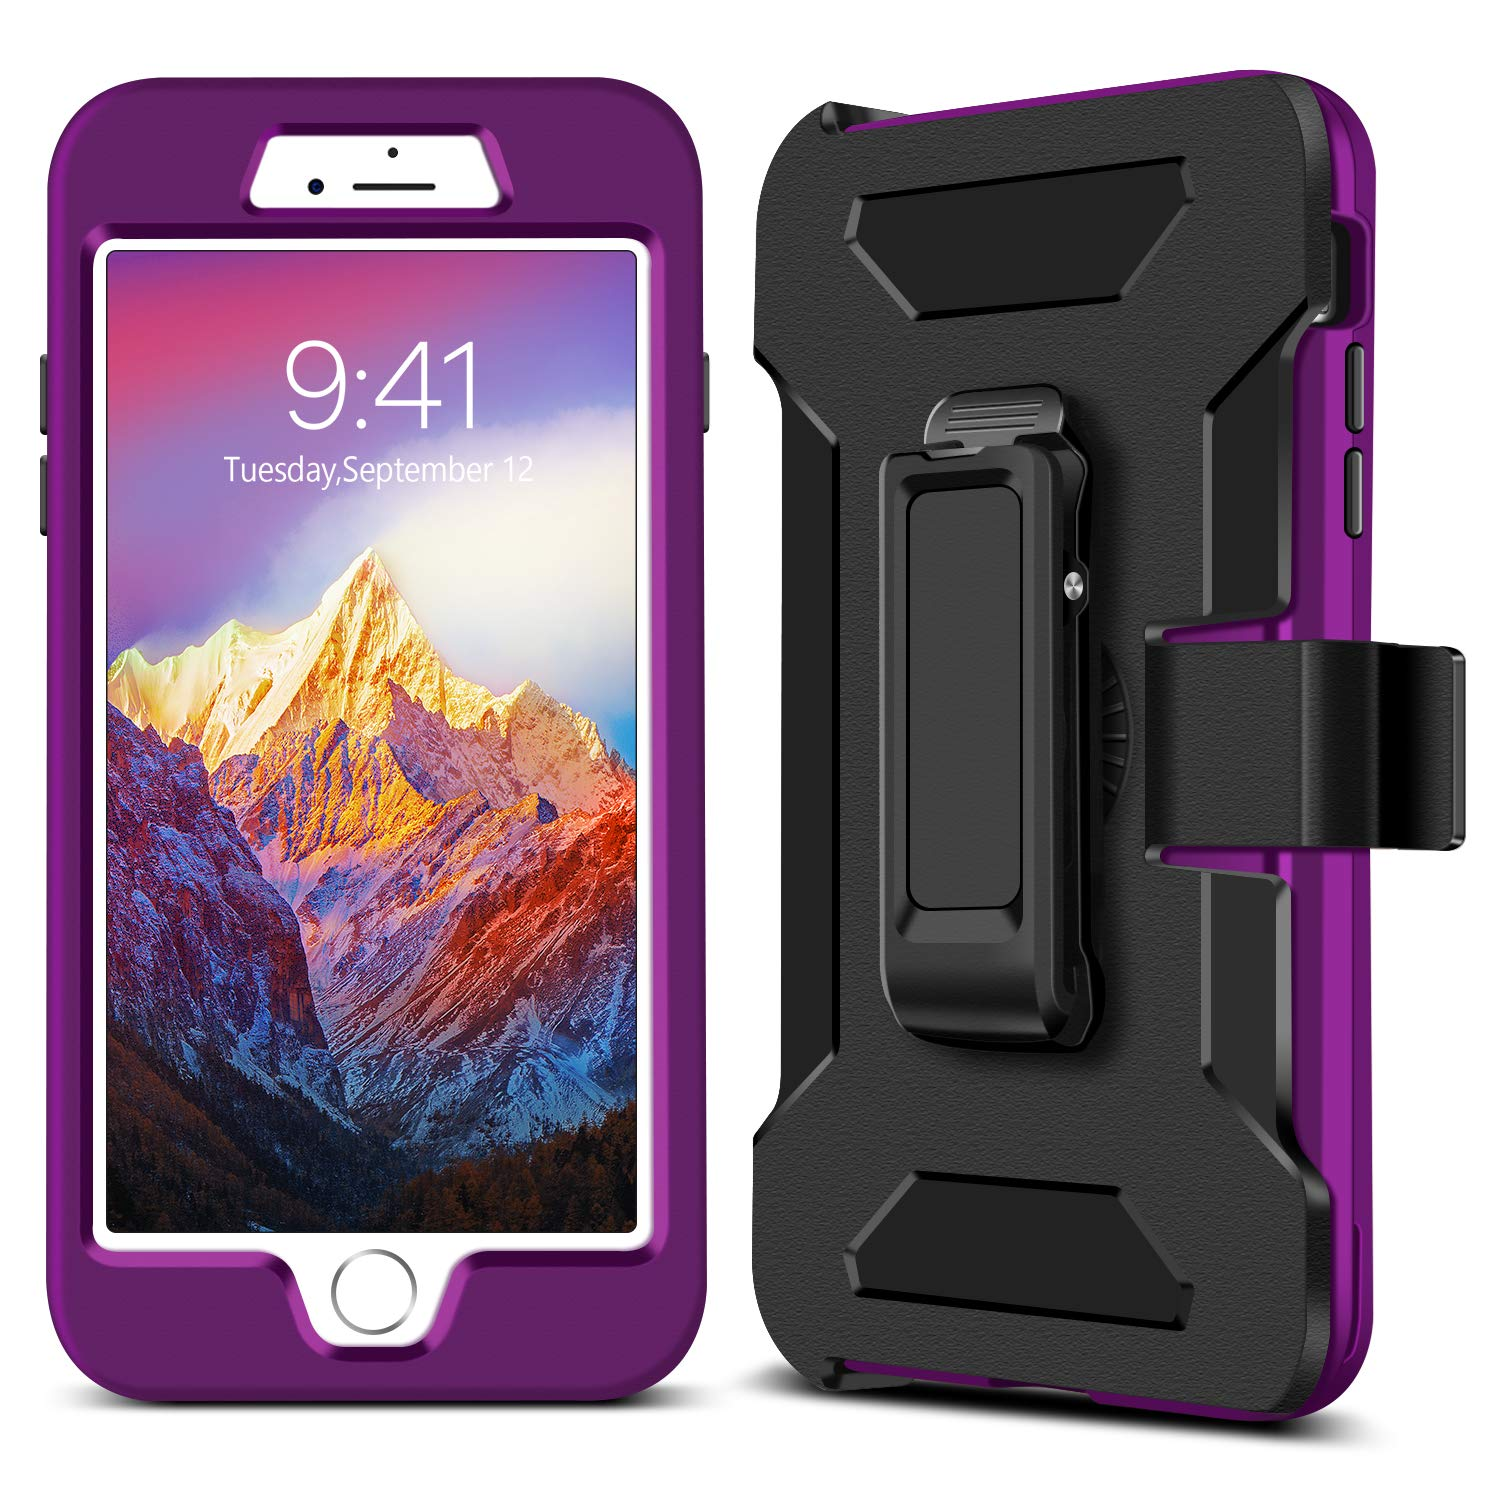 big sale db899 1668c GUAGUA iPhone 6 Plus Case iPhone 6S Plus Case 360 Degree Rotary Belt Clip  Kickstand Shockproof Hybrid Heavy Duty Protective Durable Phone Cases  Covers ...